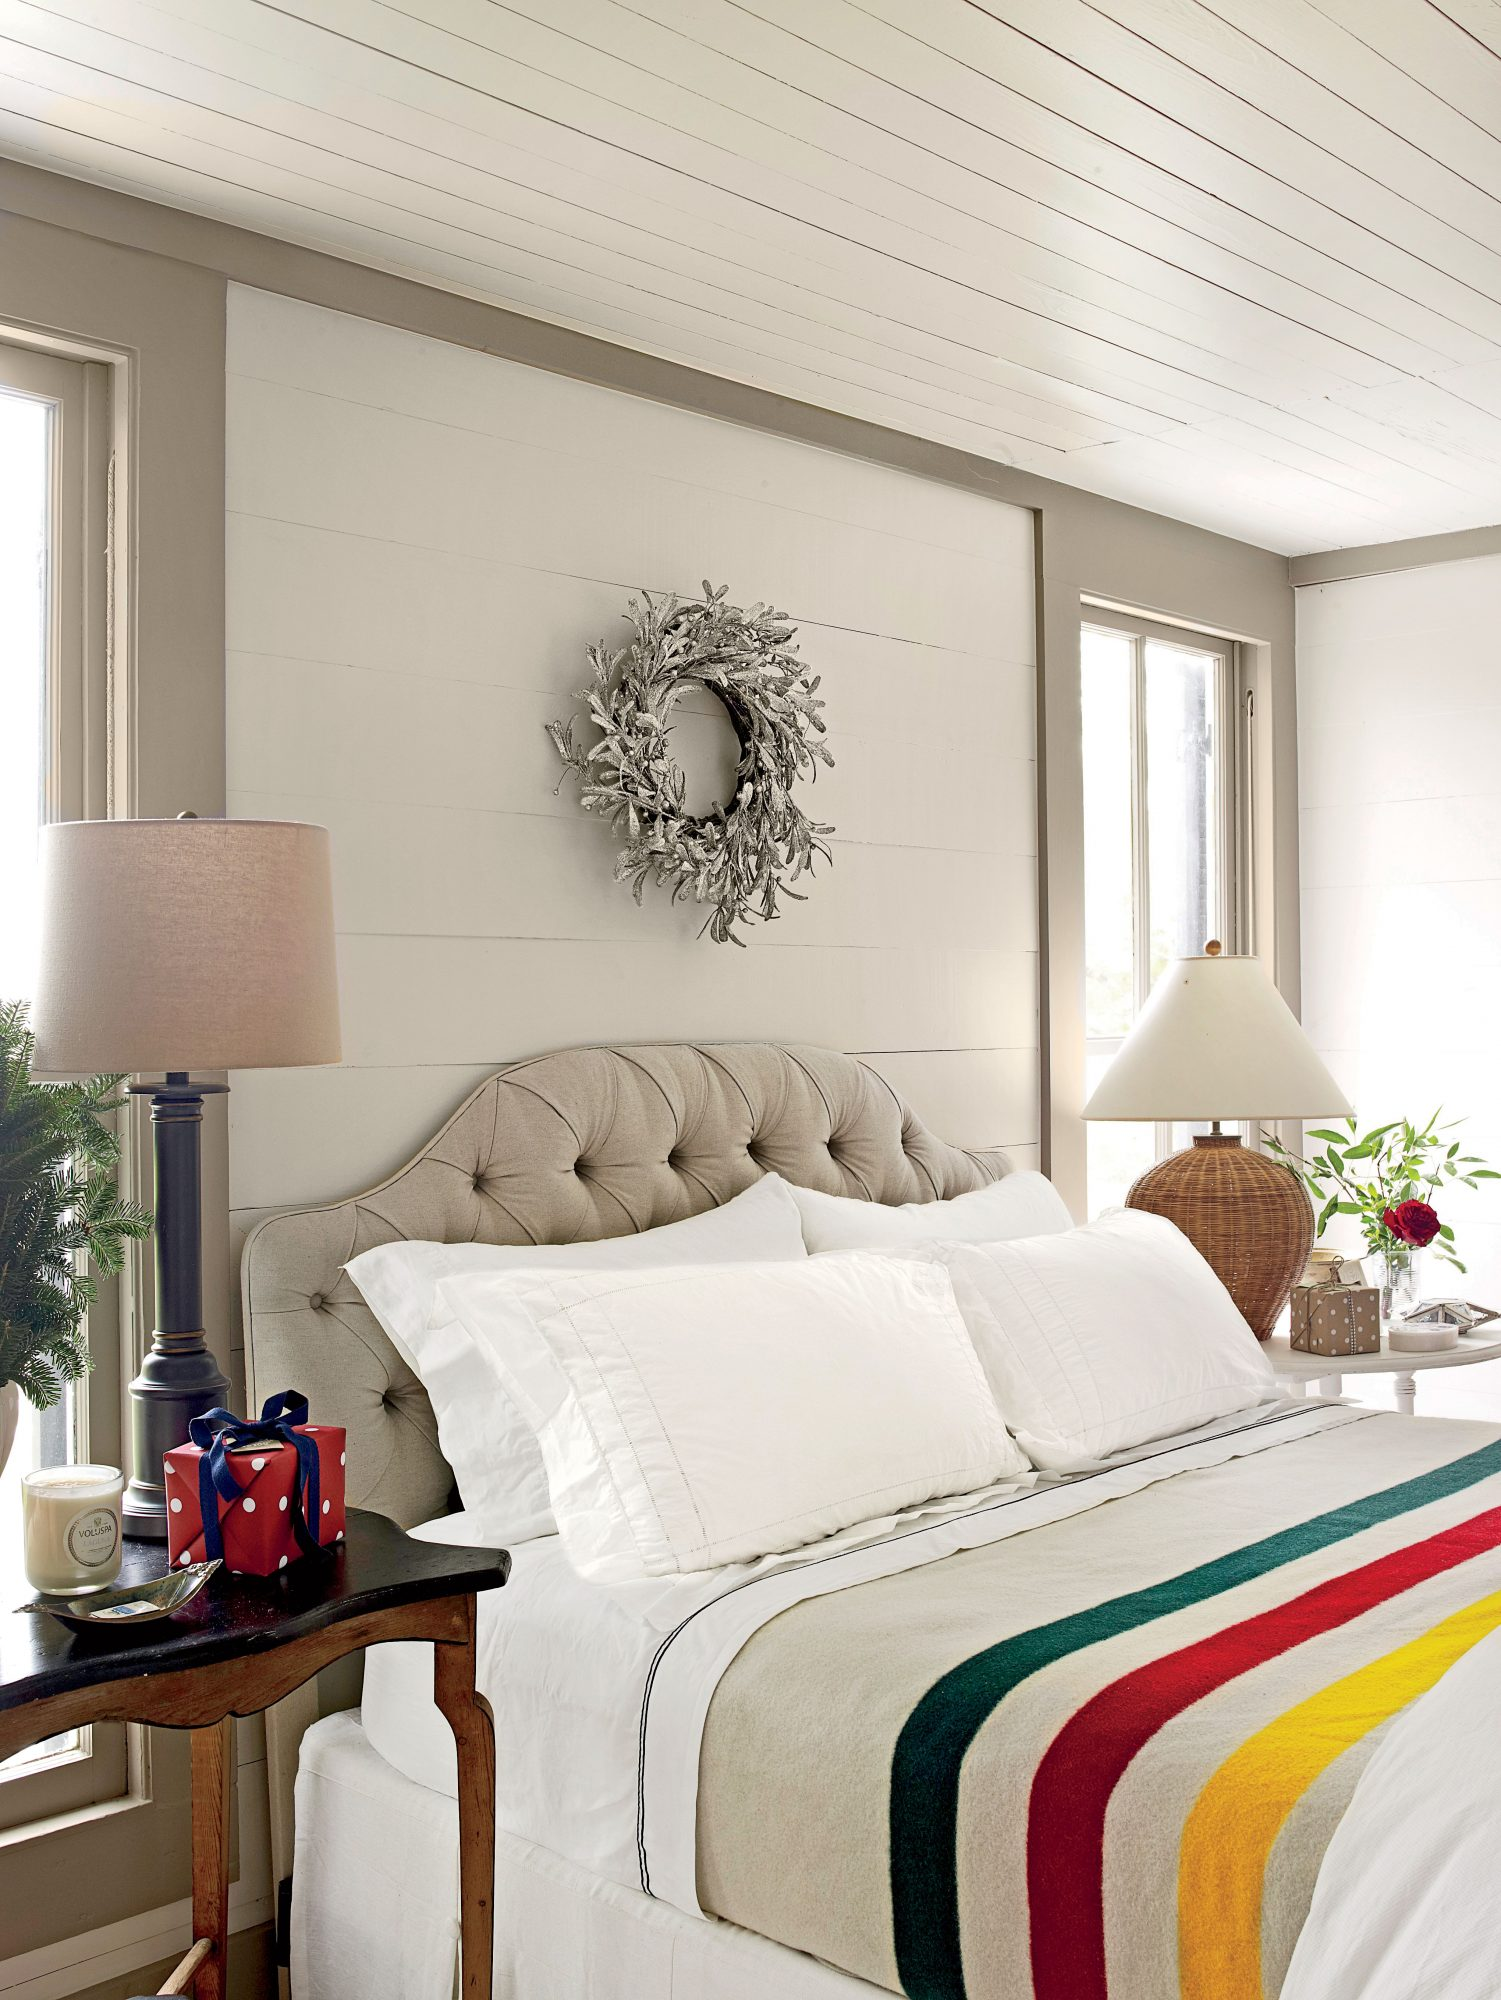 Bedroom with Shiplap Ceiling and Bright Comforter